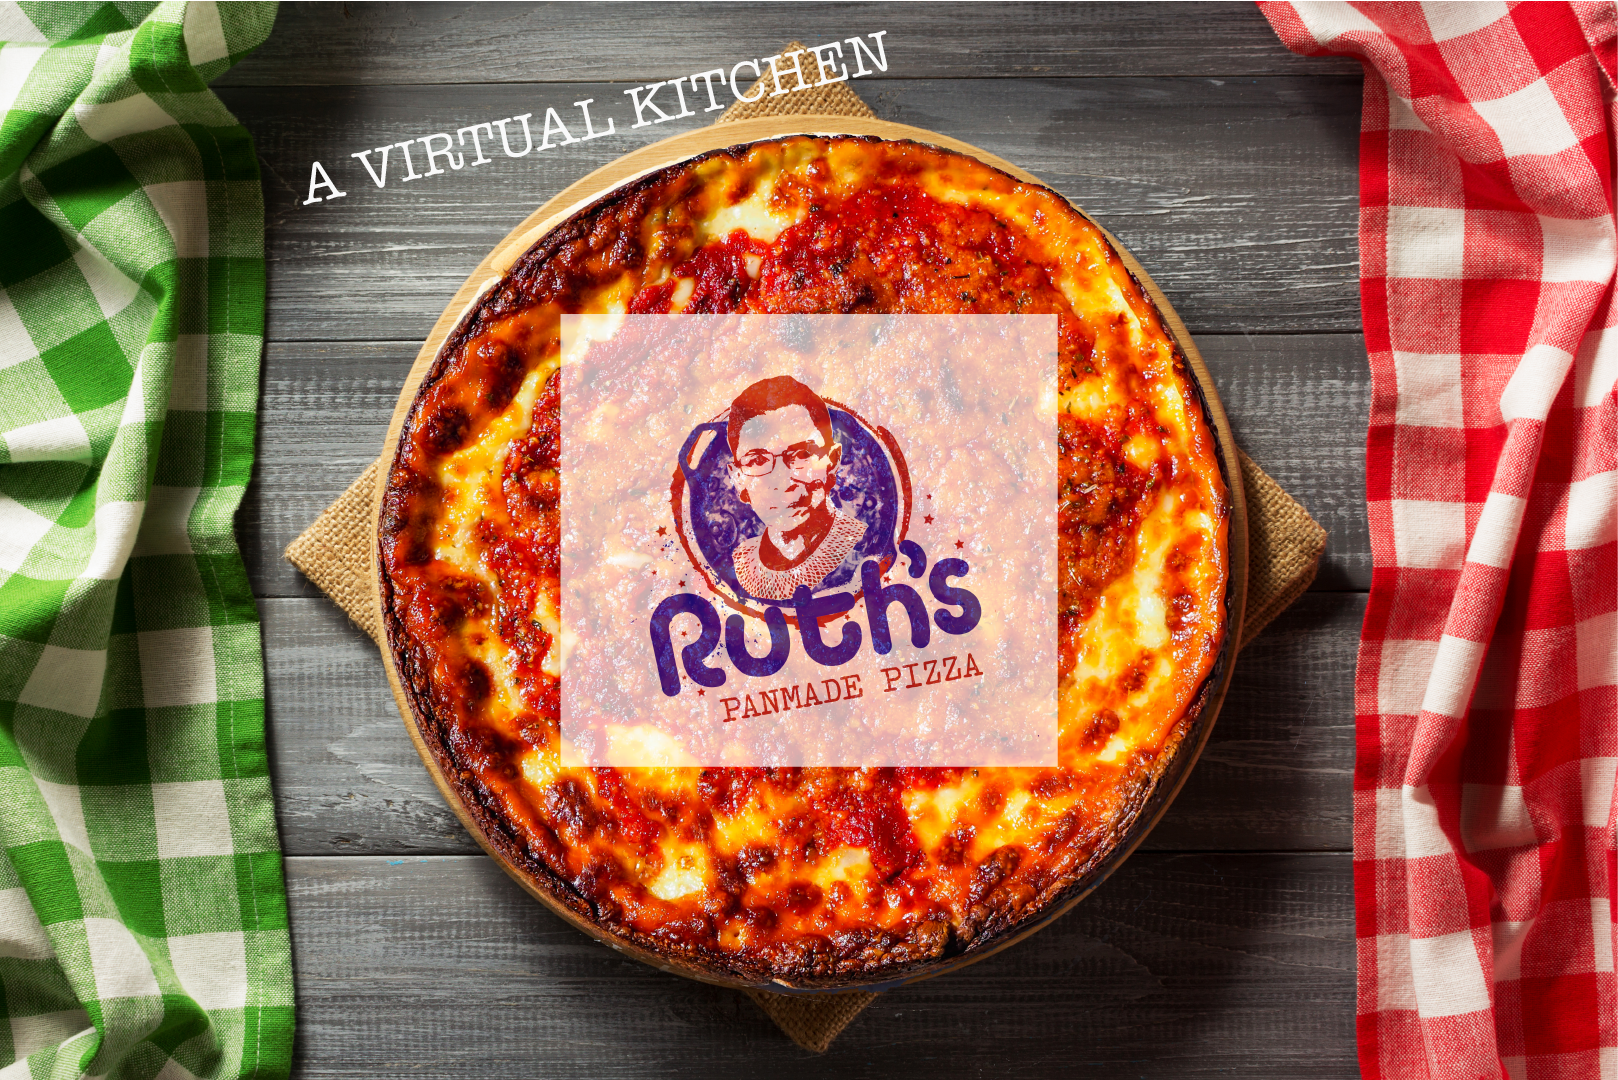 Ruth's Panmade Pizza